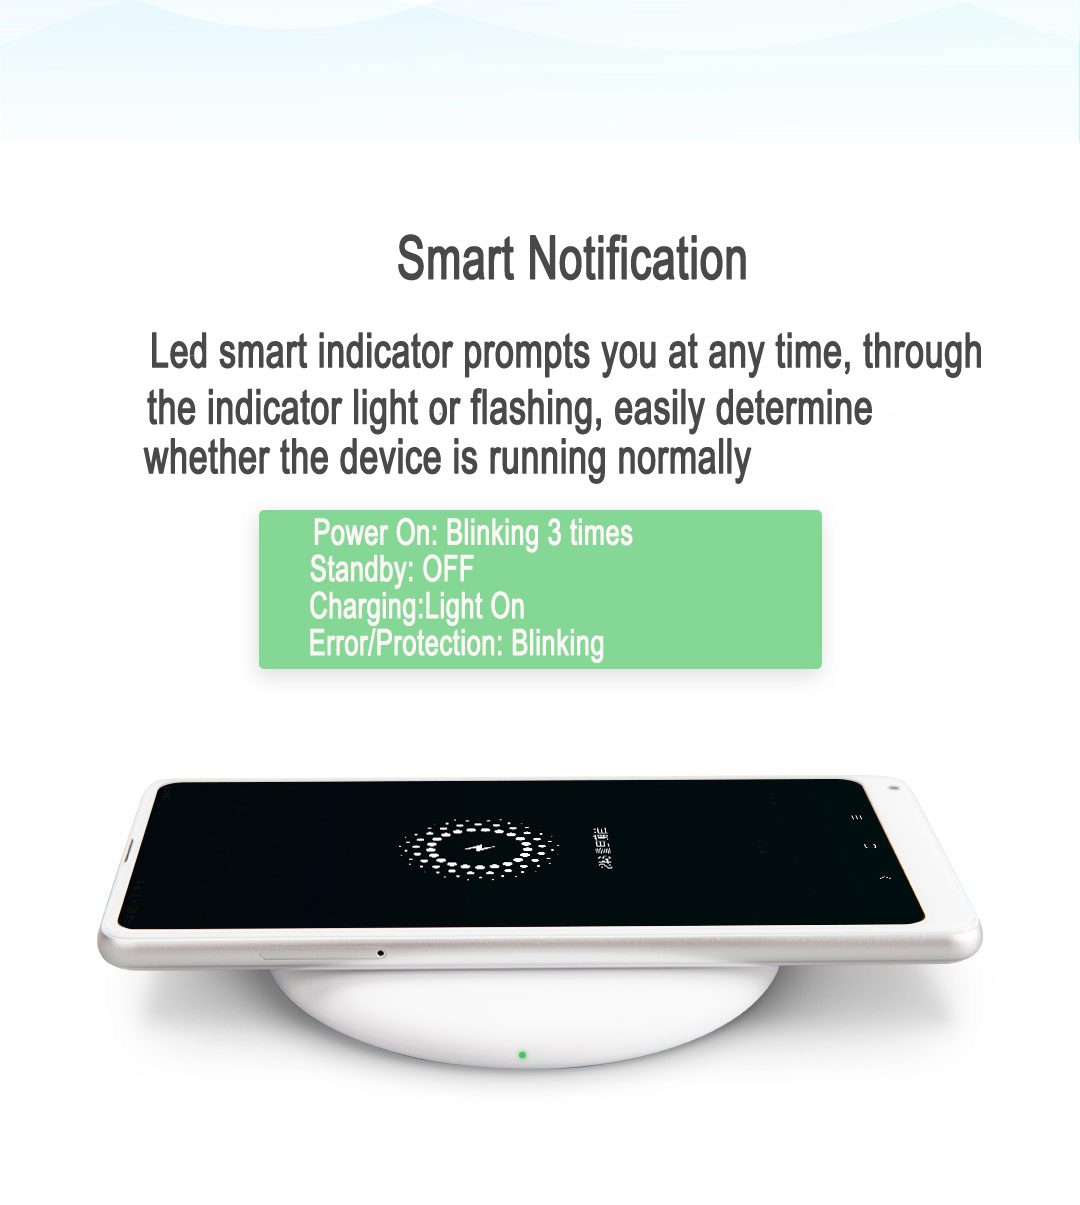 Xiaomi Mi Fast Charge Qi Wireless Charger for iPhone X 8 Plus Samsung S8 Plus